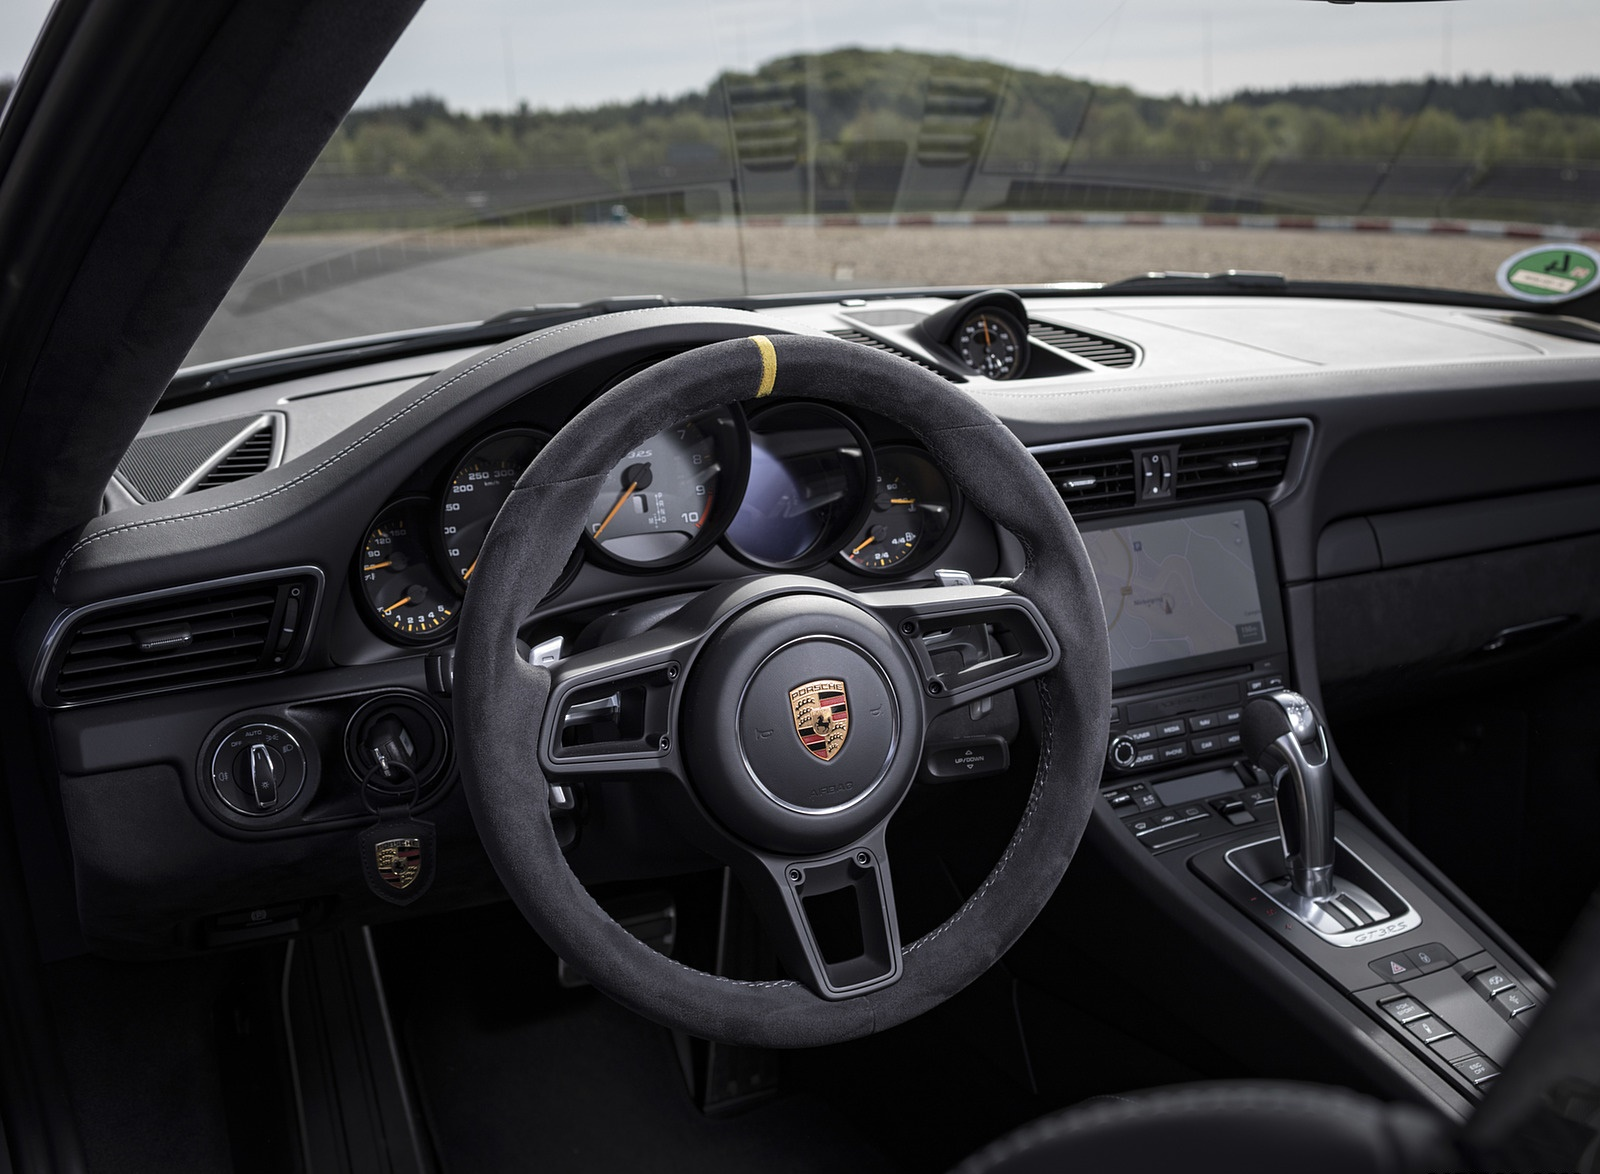 2019 Porsche 911 Gt3 Rs Color Gt Silver Interior Wallpapers 93 Newcarcars